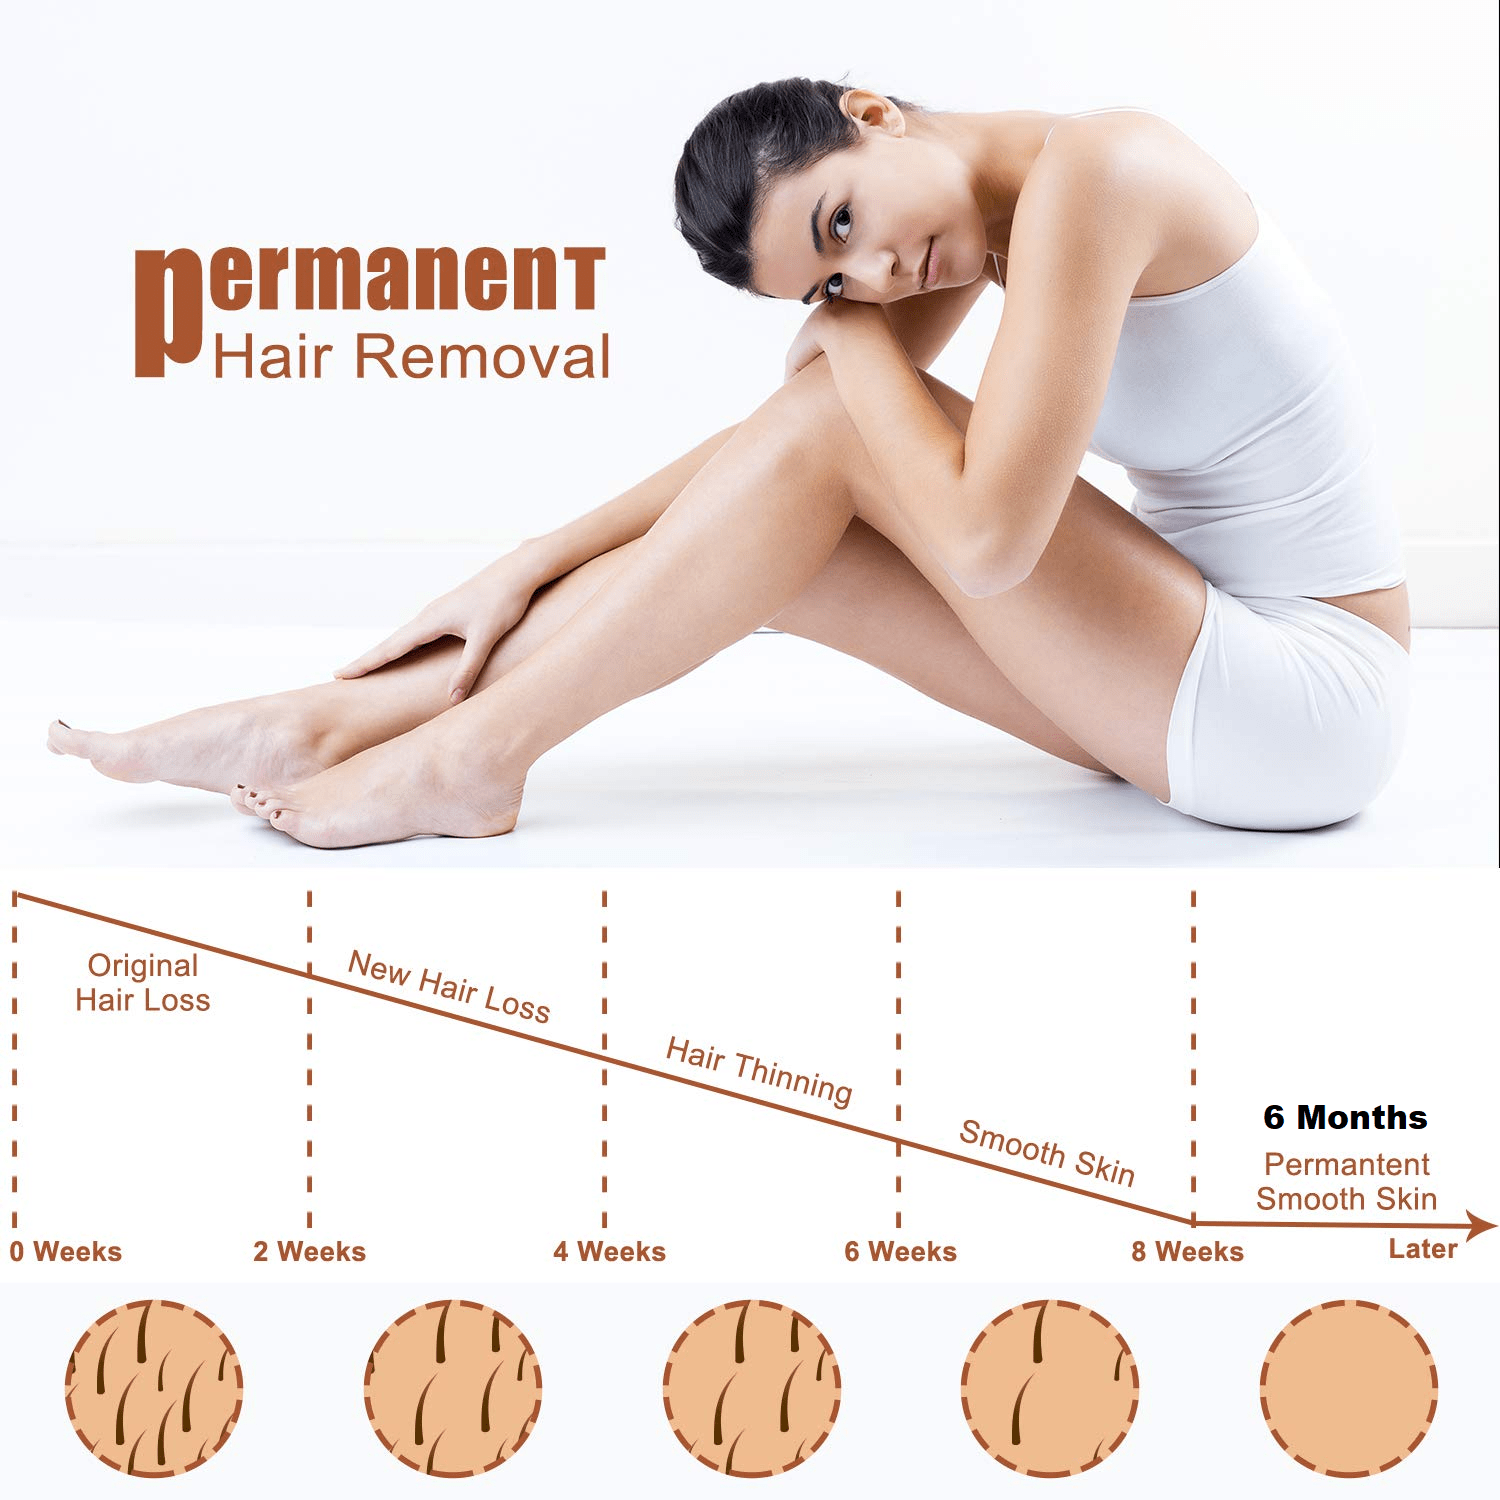 6months permanent IPL hair removal